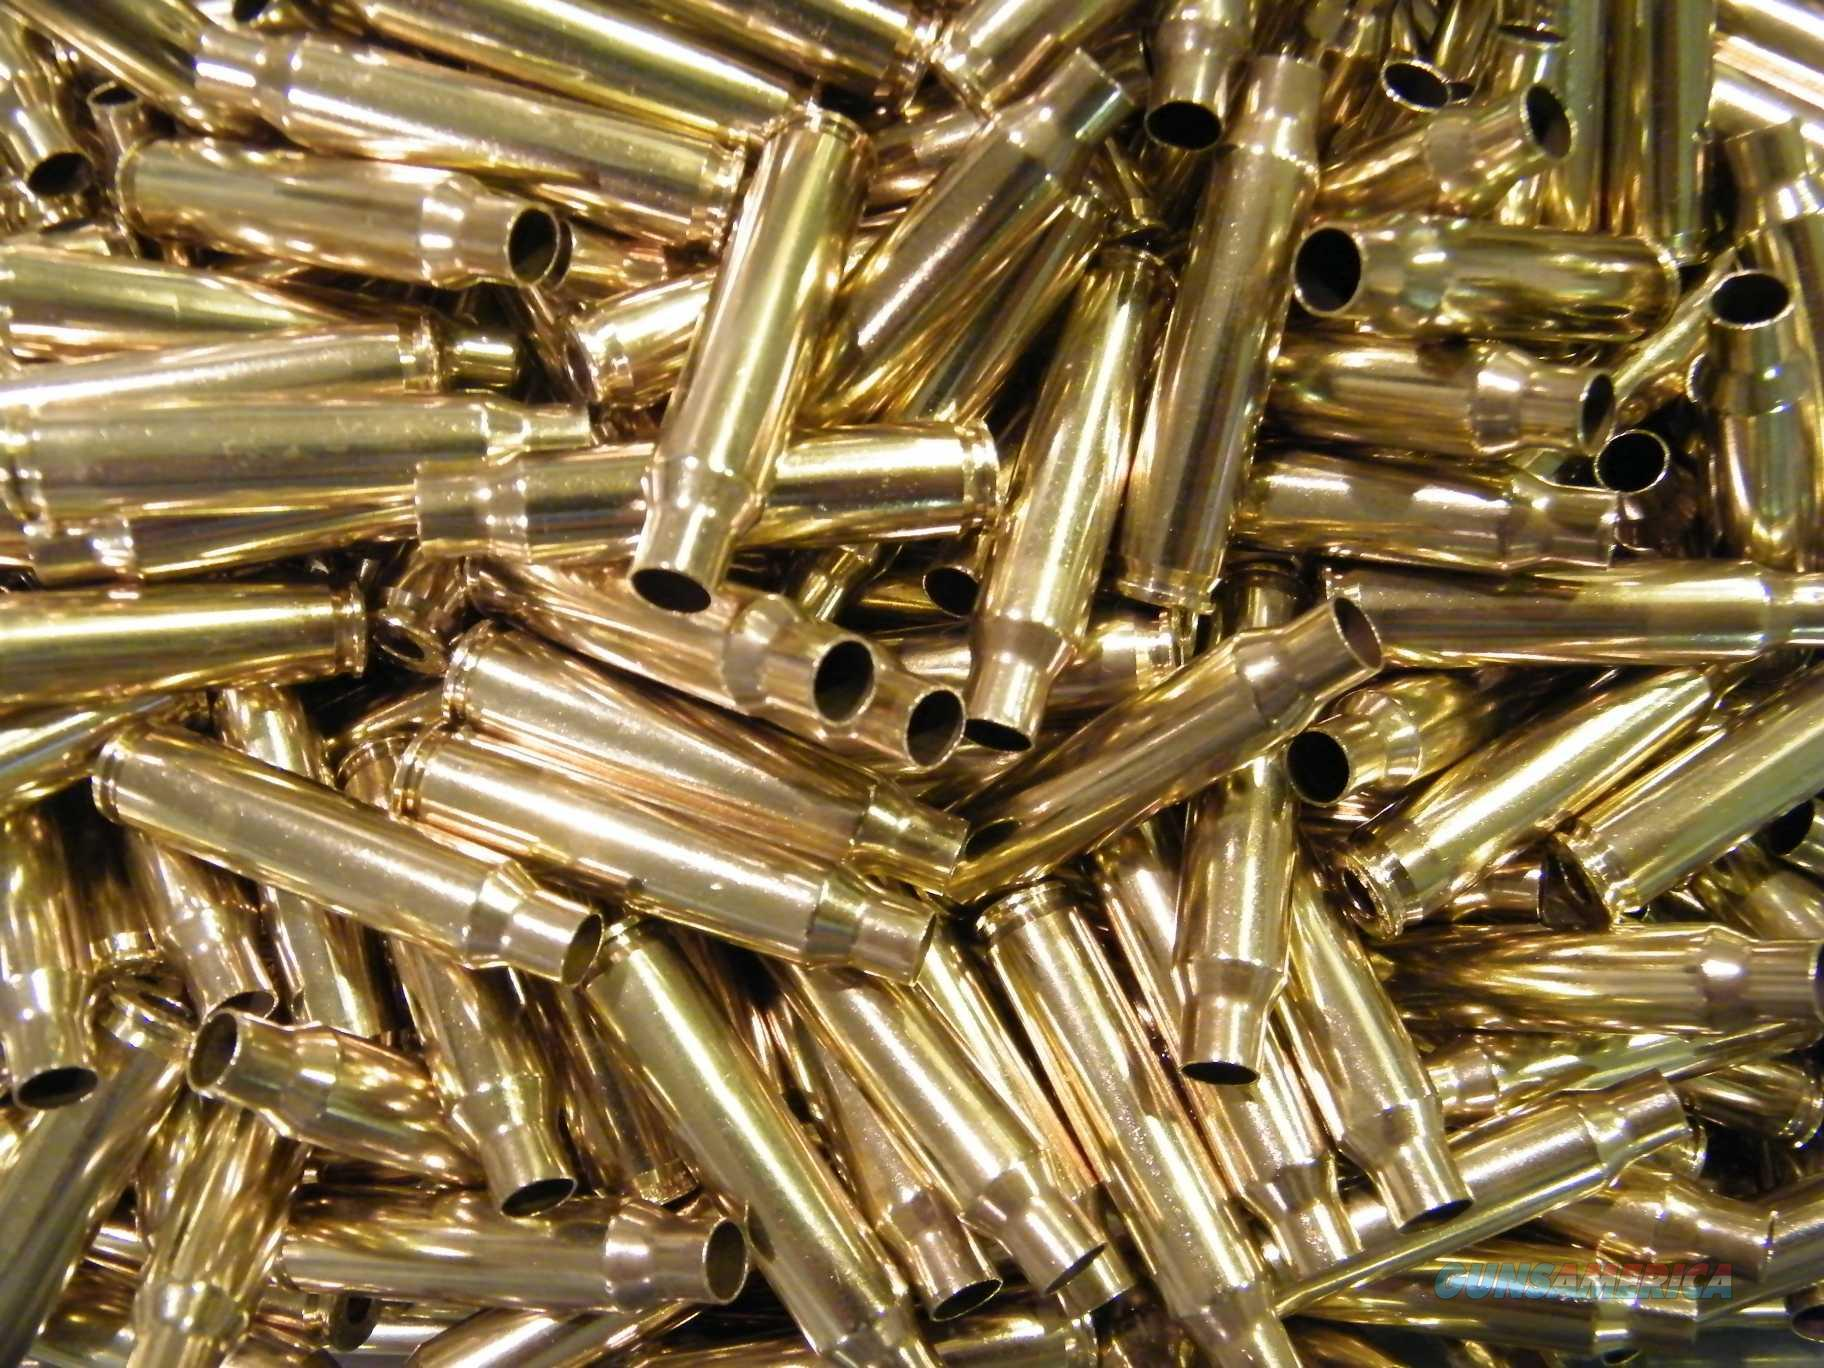 223 5.56 Brass Clean SWAGED PRIMER POCKETS - 2500  Non-Guns > Reloading > Components > Brass